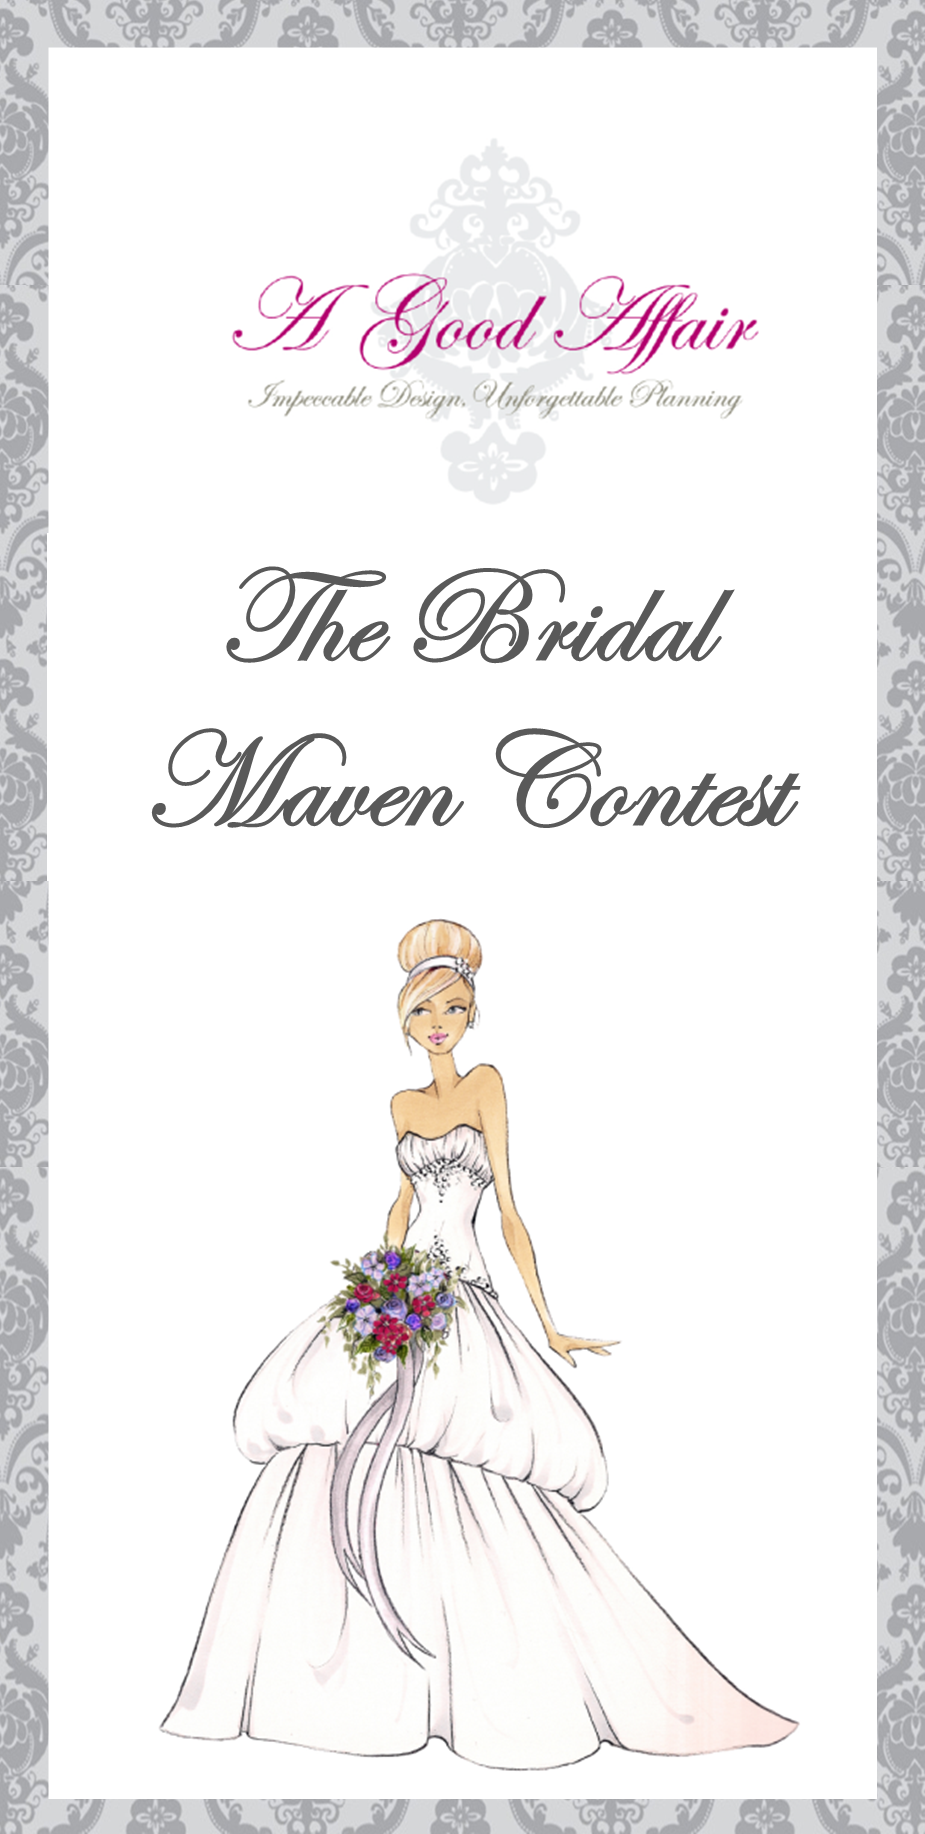 A Good Affair Wedding & Event Production Bridal Maven Contest